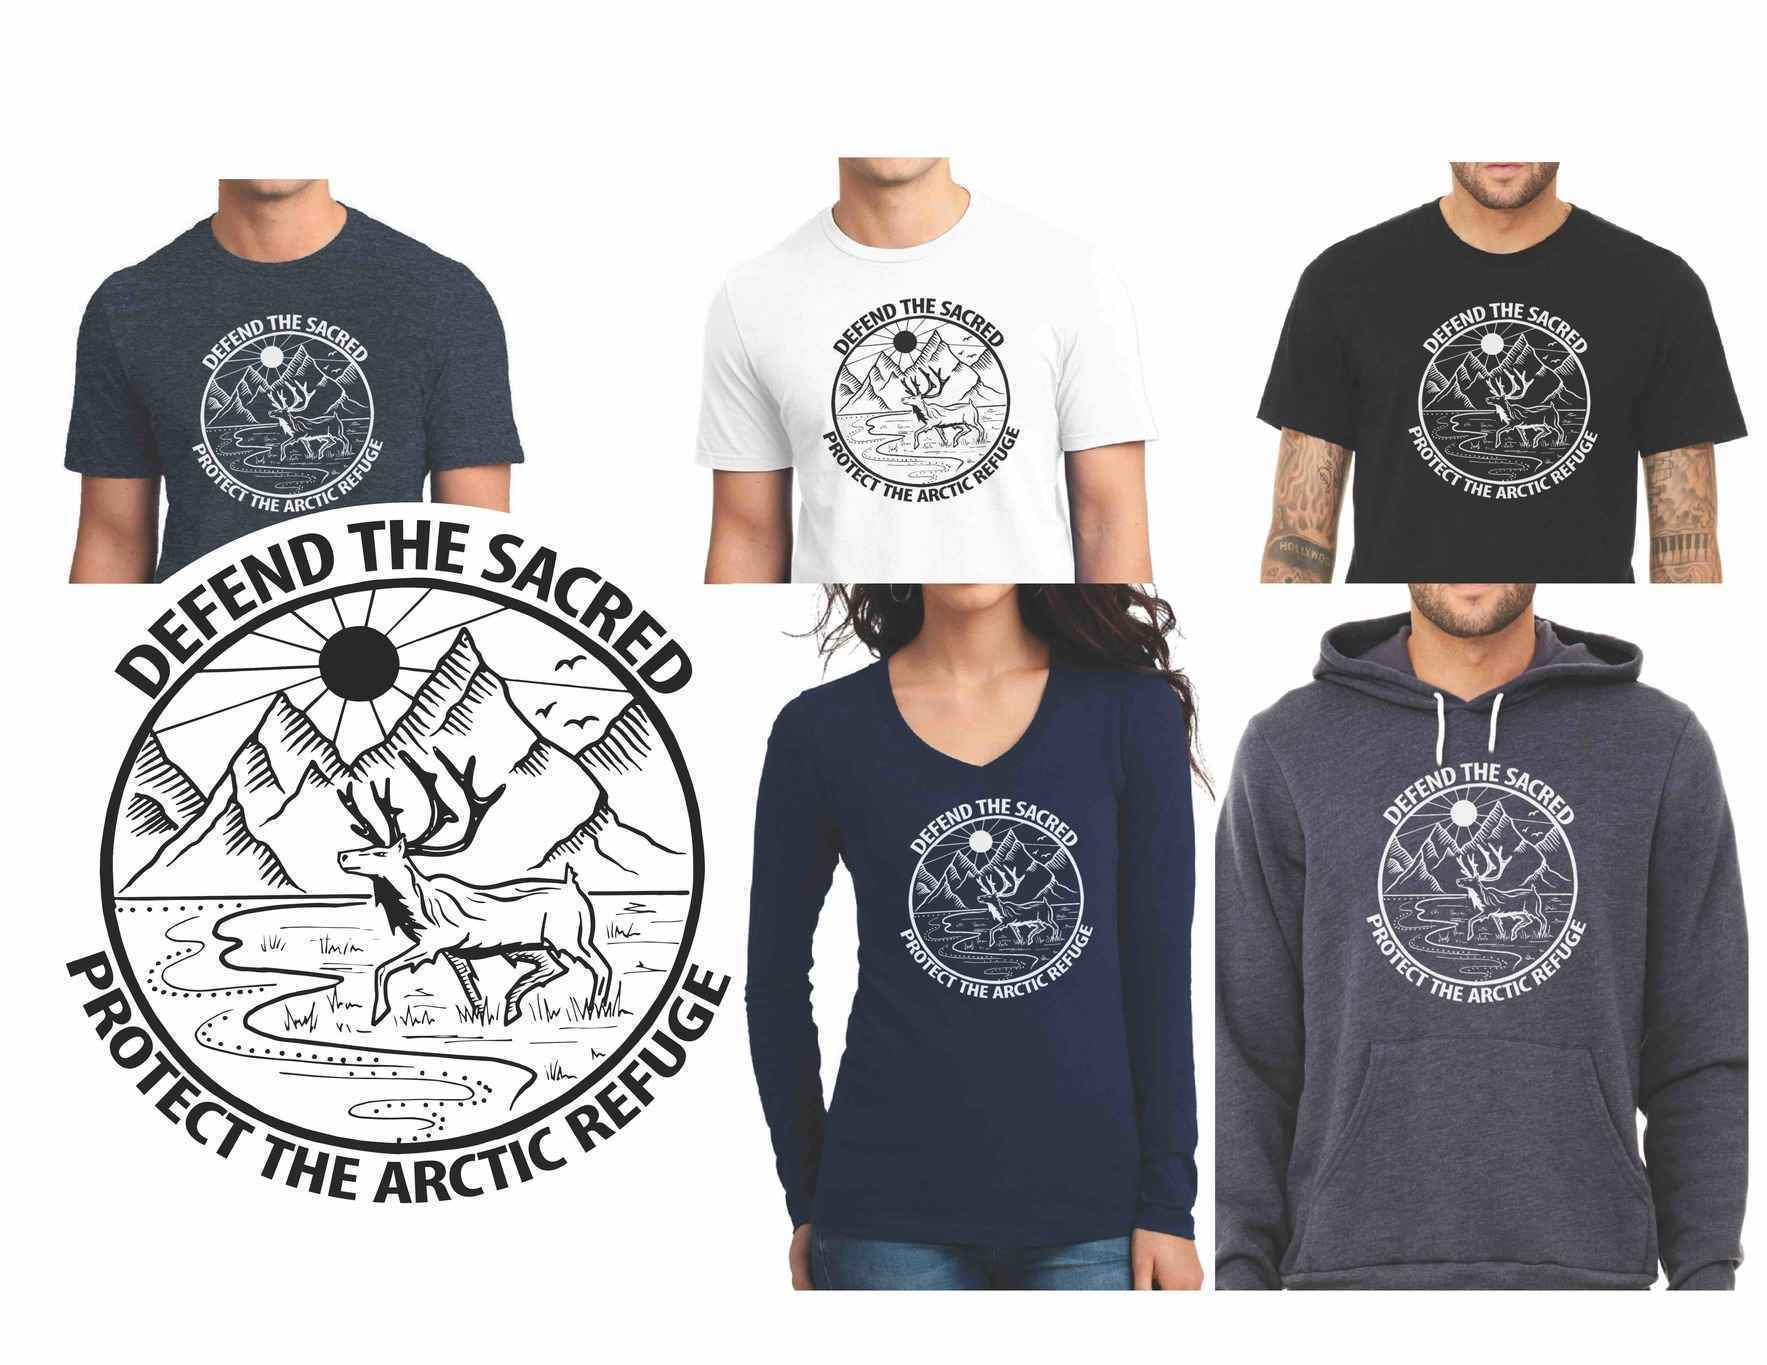 Order Your T-shirt Now! image